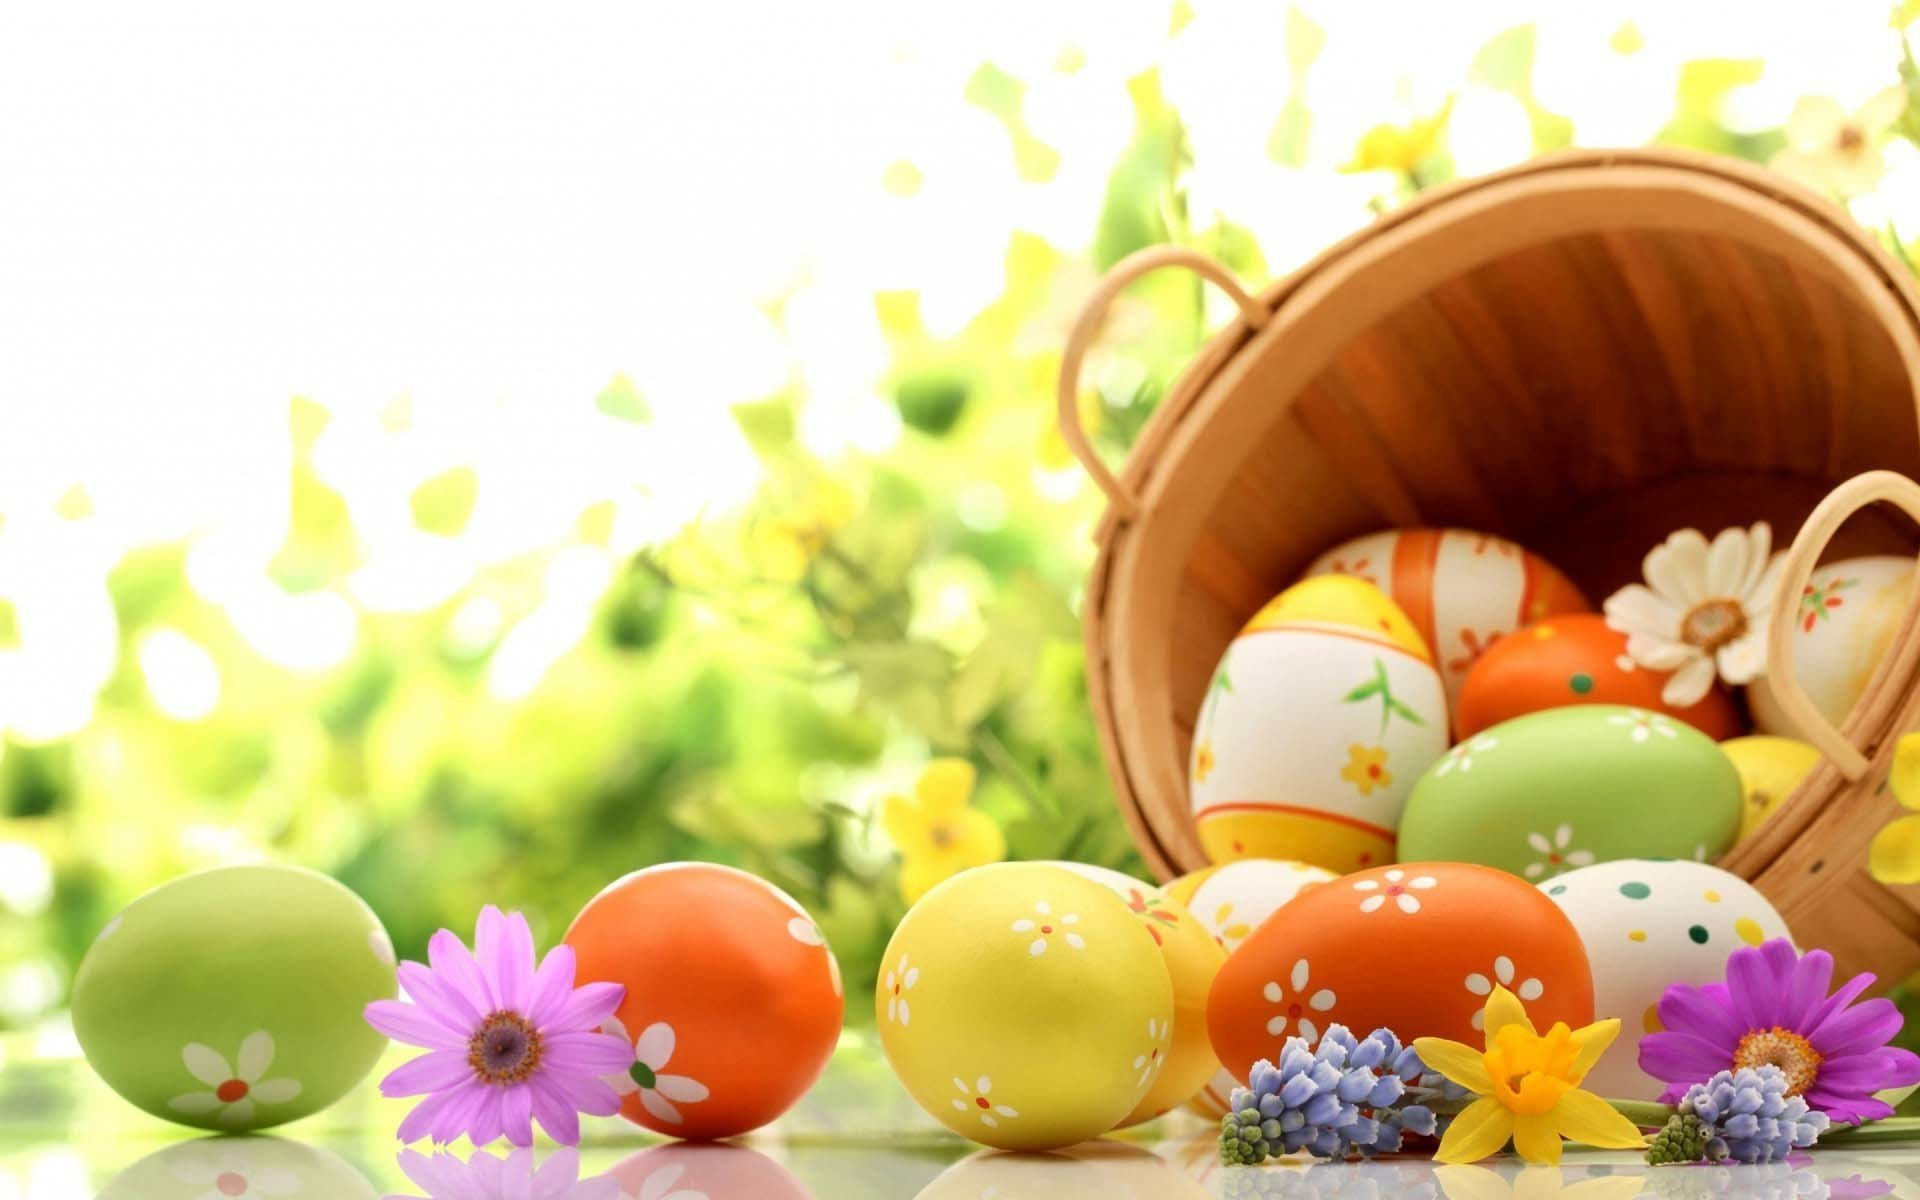 2560x1600 Wallpaper Easter Bunny Eggs Violets Daffodils White Background